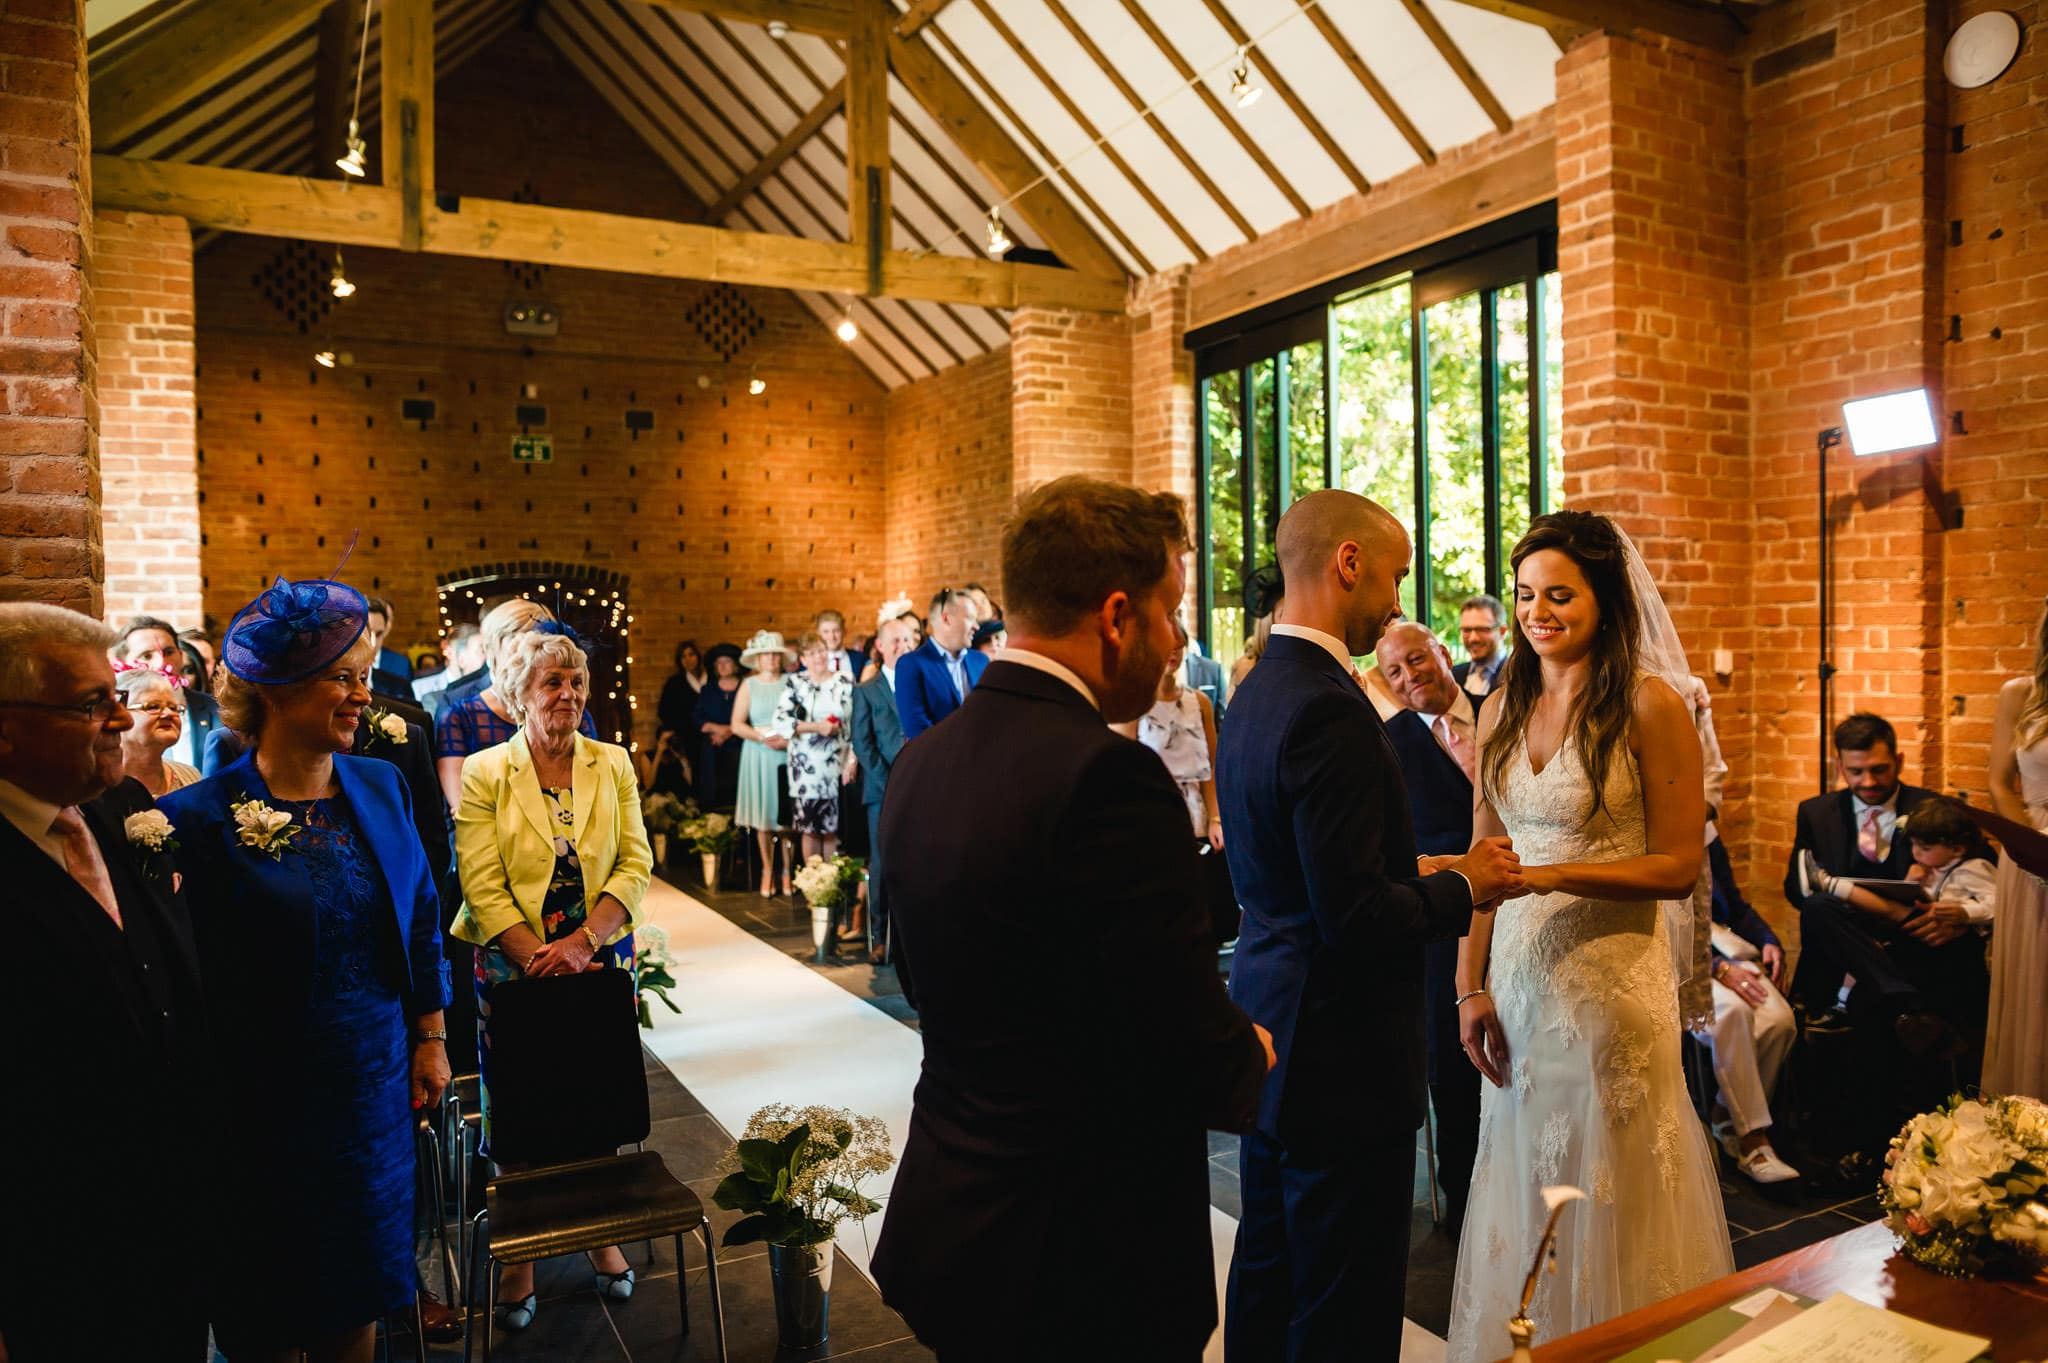 Wedding at Redhouse Barn in Stoke Prior, Worcestershire 64